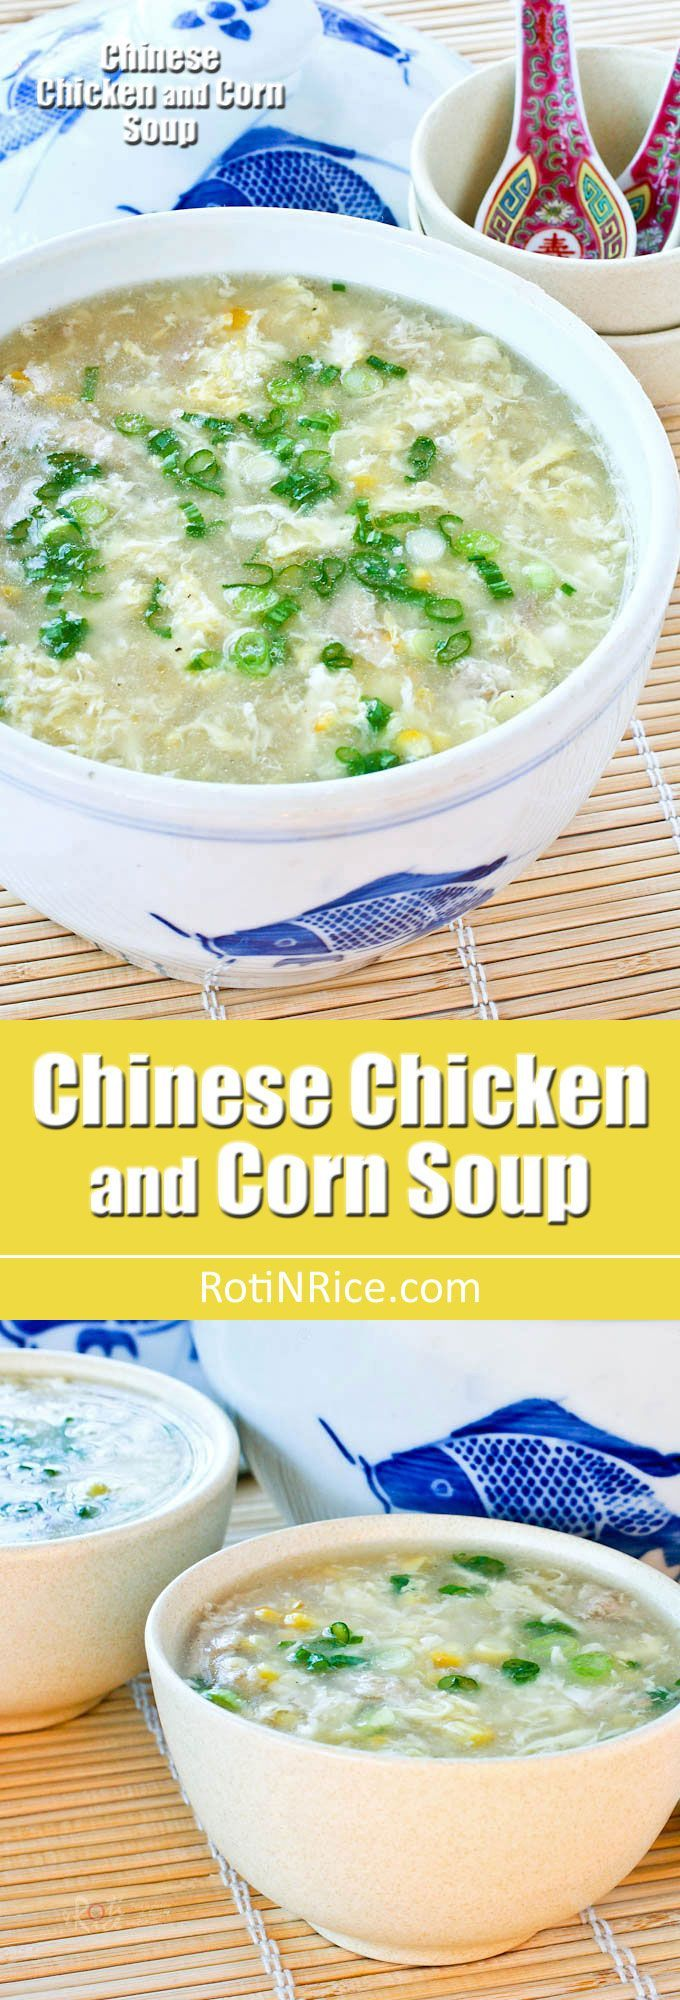 Shredded chicken meat, crunchy corn kernels, and chicken broth make up this easy Chinese Chicken and Corn Soup. A must try when fresh corn is in season. | RotiNRice.com